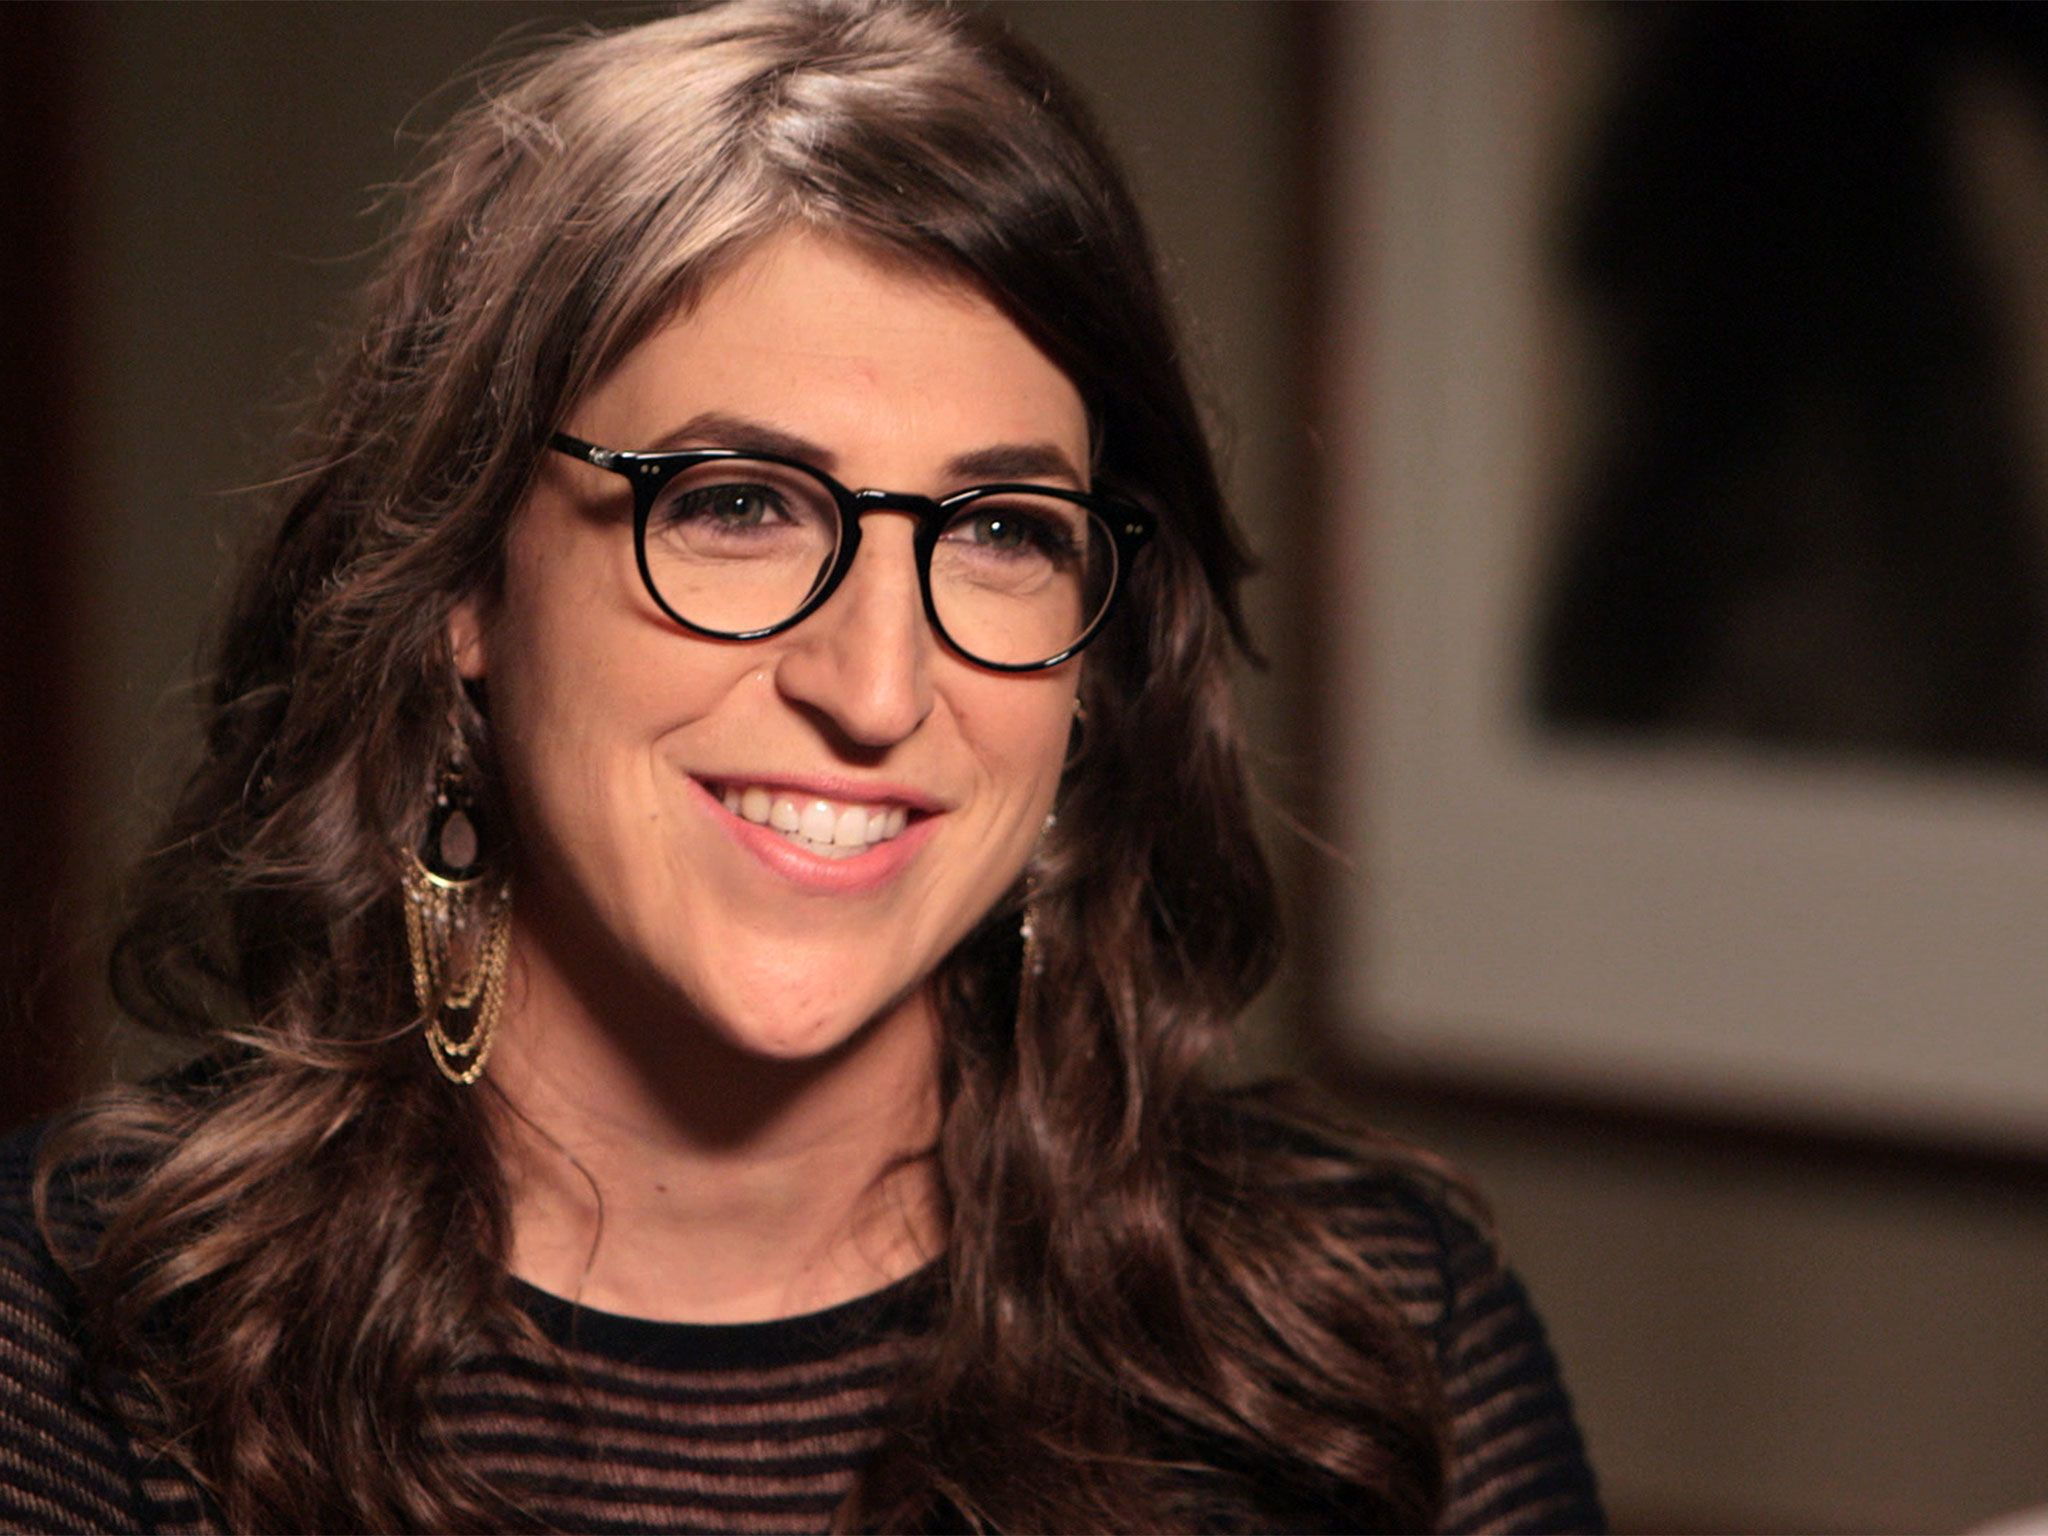 New York, N.Y.- Mayim Bialik during her interview with Neil deGrasse Tyson. This image is from... [Photo of the day - December 2016]